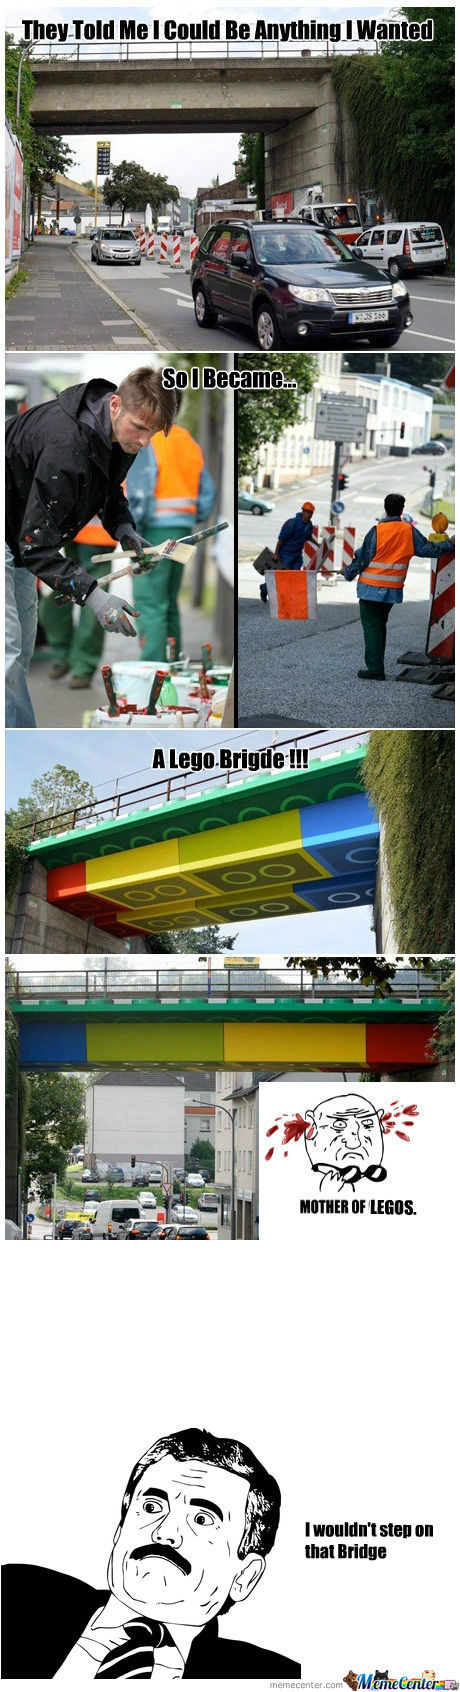 [RMX] They Told Me I Could Be Anything I Wanted, So I Became A Lego Bridge